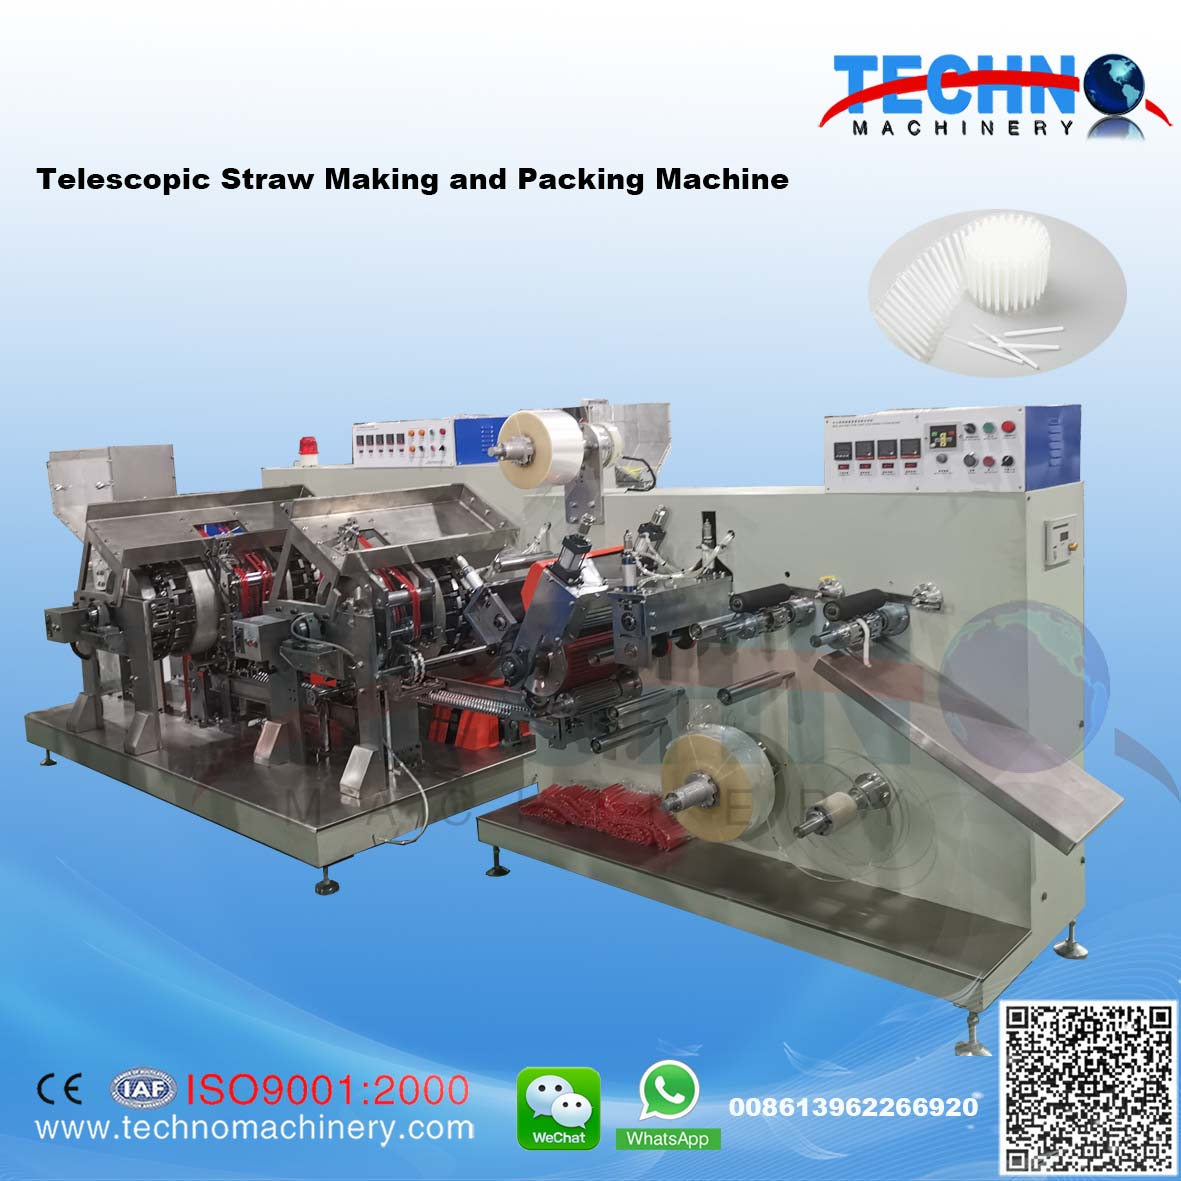 TELESCOPIC STRAW MAKING MACHINE